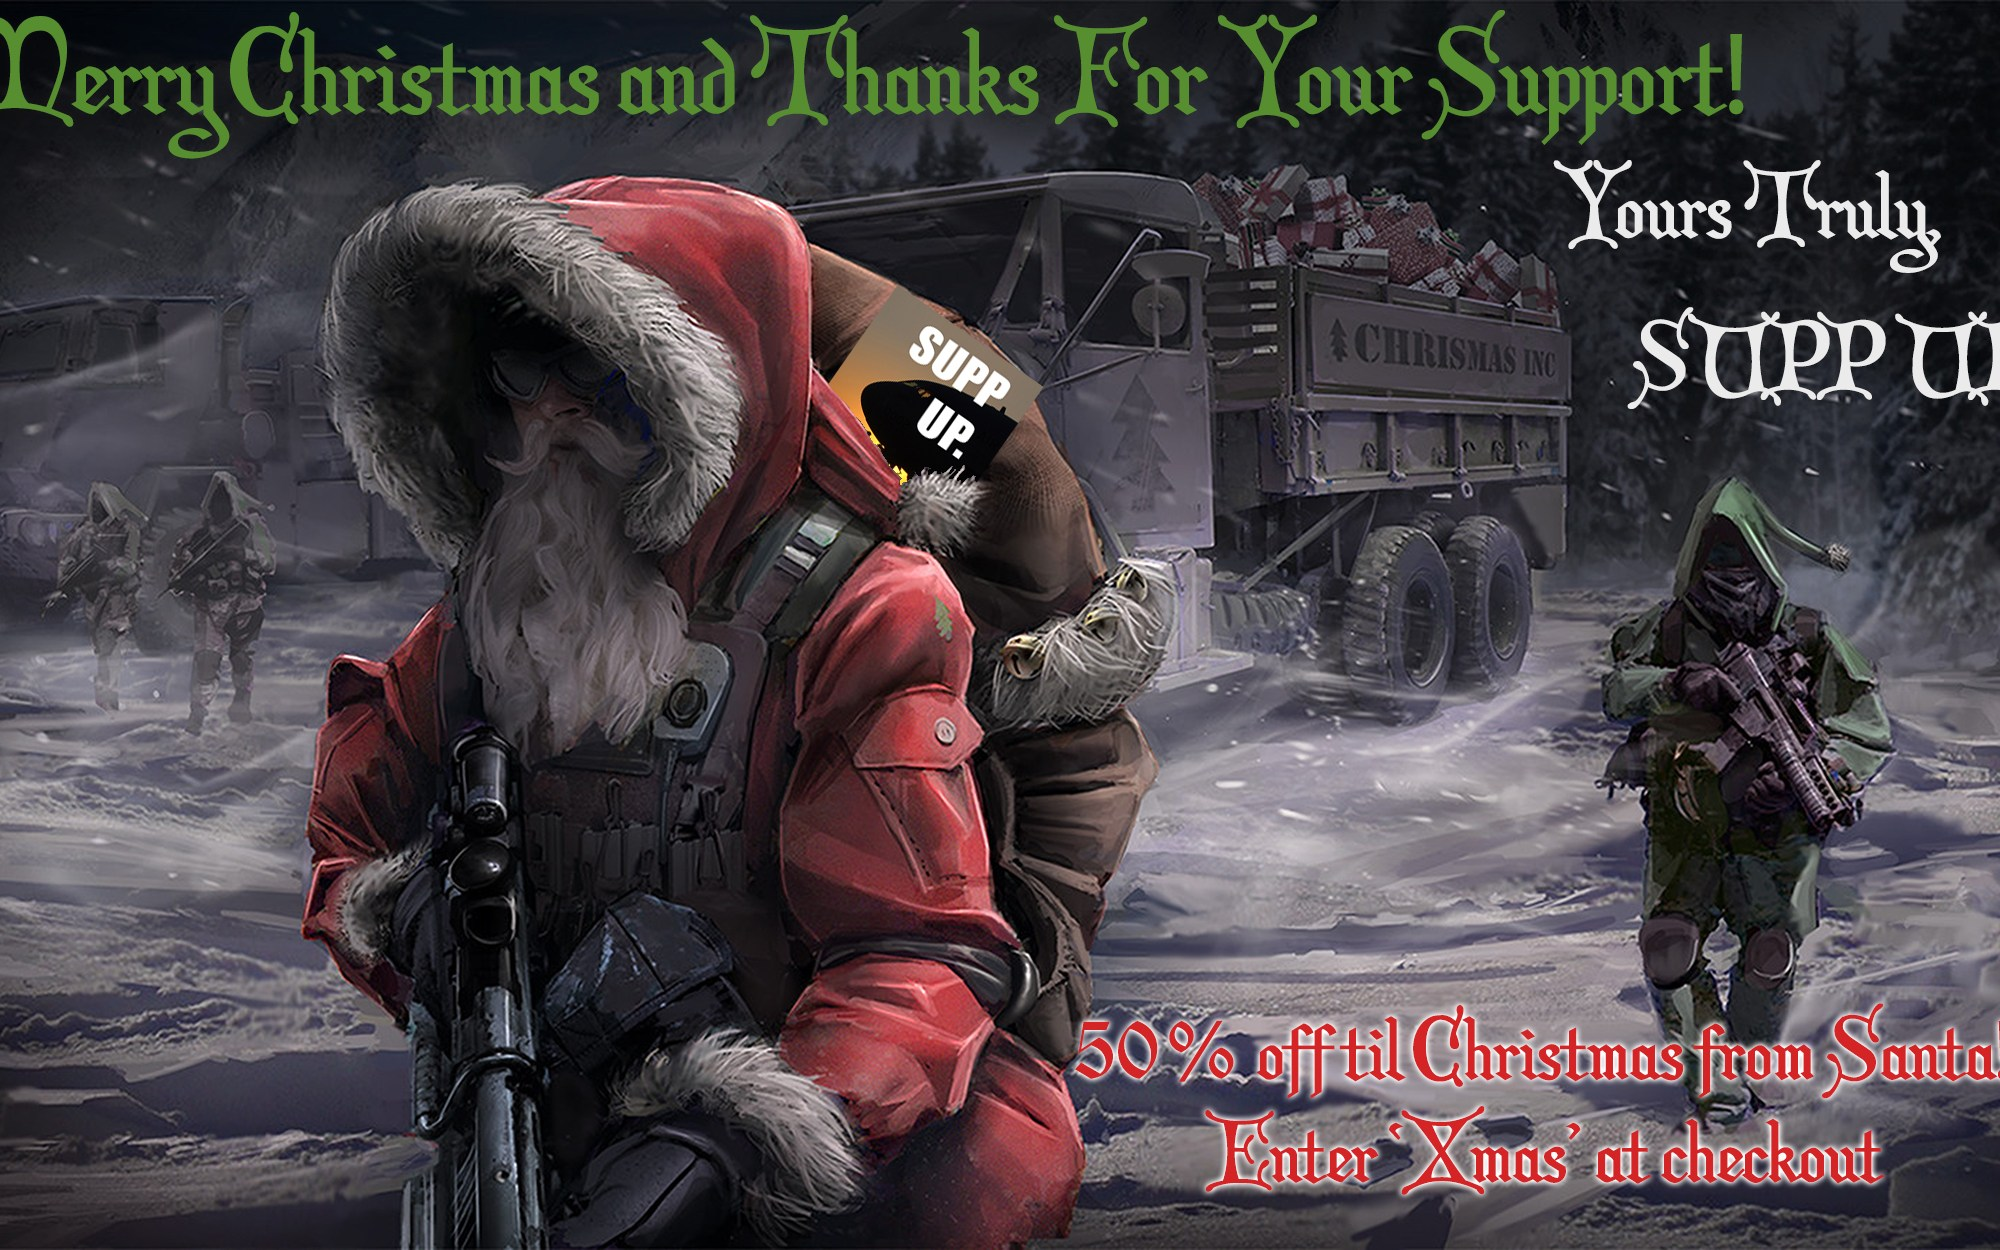 Countdown to Christmas Part 1 Merry Christmas My Friend A Marine's Poem SUPP UP, SUPP UP Countdown to Christmas Part 1 Merry Christmas My Friend A Marine's Poem, SUPP UP, SUPP UP Blog, SUPP UP Guides, Sol Rego, Sol Rego SUPP UP, military christmas gift ideas, SUPP UP, Military Christmas Poem, Military Christmas, Army Christmas, Navy Christmas, Marines Christmas, Air Force Christmas, British Army, Royal Navy, Royal Air Force, Royal Marines, US Army, US Navy, US Marines, Navy SEALS, US Air Force,SUPP UP No Bull Whole Food Military Nutrition On The Go, SUPP UP Book, SUPP UP Sol Rego, SUPP UP Military Nutrition Guide, SUPP UP Guide, SUPP UP No Bull Whole Food Military Nutrition At Home, SUPP UP No Bull Whole Food Military Nutrition At Home Sol Rego, Sol Rego SUPP UP No Bull Whole Food Military Nutrition At Home, SUPP UP, SUPP UP No Bull Whole Food Military Nutrition On The Go Sol Rego, Sol Rego SUPP UP, SUPP UP No Bull Whole Food Military Nutrition On The Go, SUPP UP, SUPP UP No Bull Whole Food Military Nutrition On The Go S Rego, S Rego SUPP UP No Bull Whole Food Military Nutrition At Home,SUPP UP No Bull Whole Food Military Nutrition At Home S Rego,SUPP UP, SUPP UP No Bull Whole Food Military Nutrition On The Go, Military Diet, Navy Nutrition, Navy Nutrition, Army Nutrition, Spec Ops Nutrition, Military Nutrition Guide, Army Nutrition Guide, Armed Forces Nutrition, Air Force Nutrition, Navy SEALS Nutrition Guide, Nutrient Dense Foods, Portable Nutrient Dense Foods, Food On The Go, Healthy Food On The Go, Nutrient Dense Military Foods On The Go